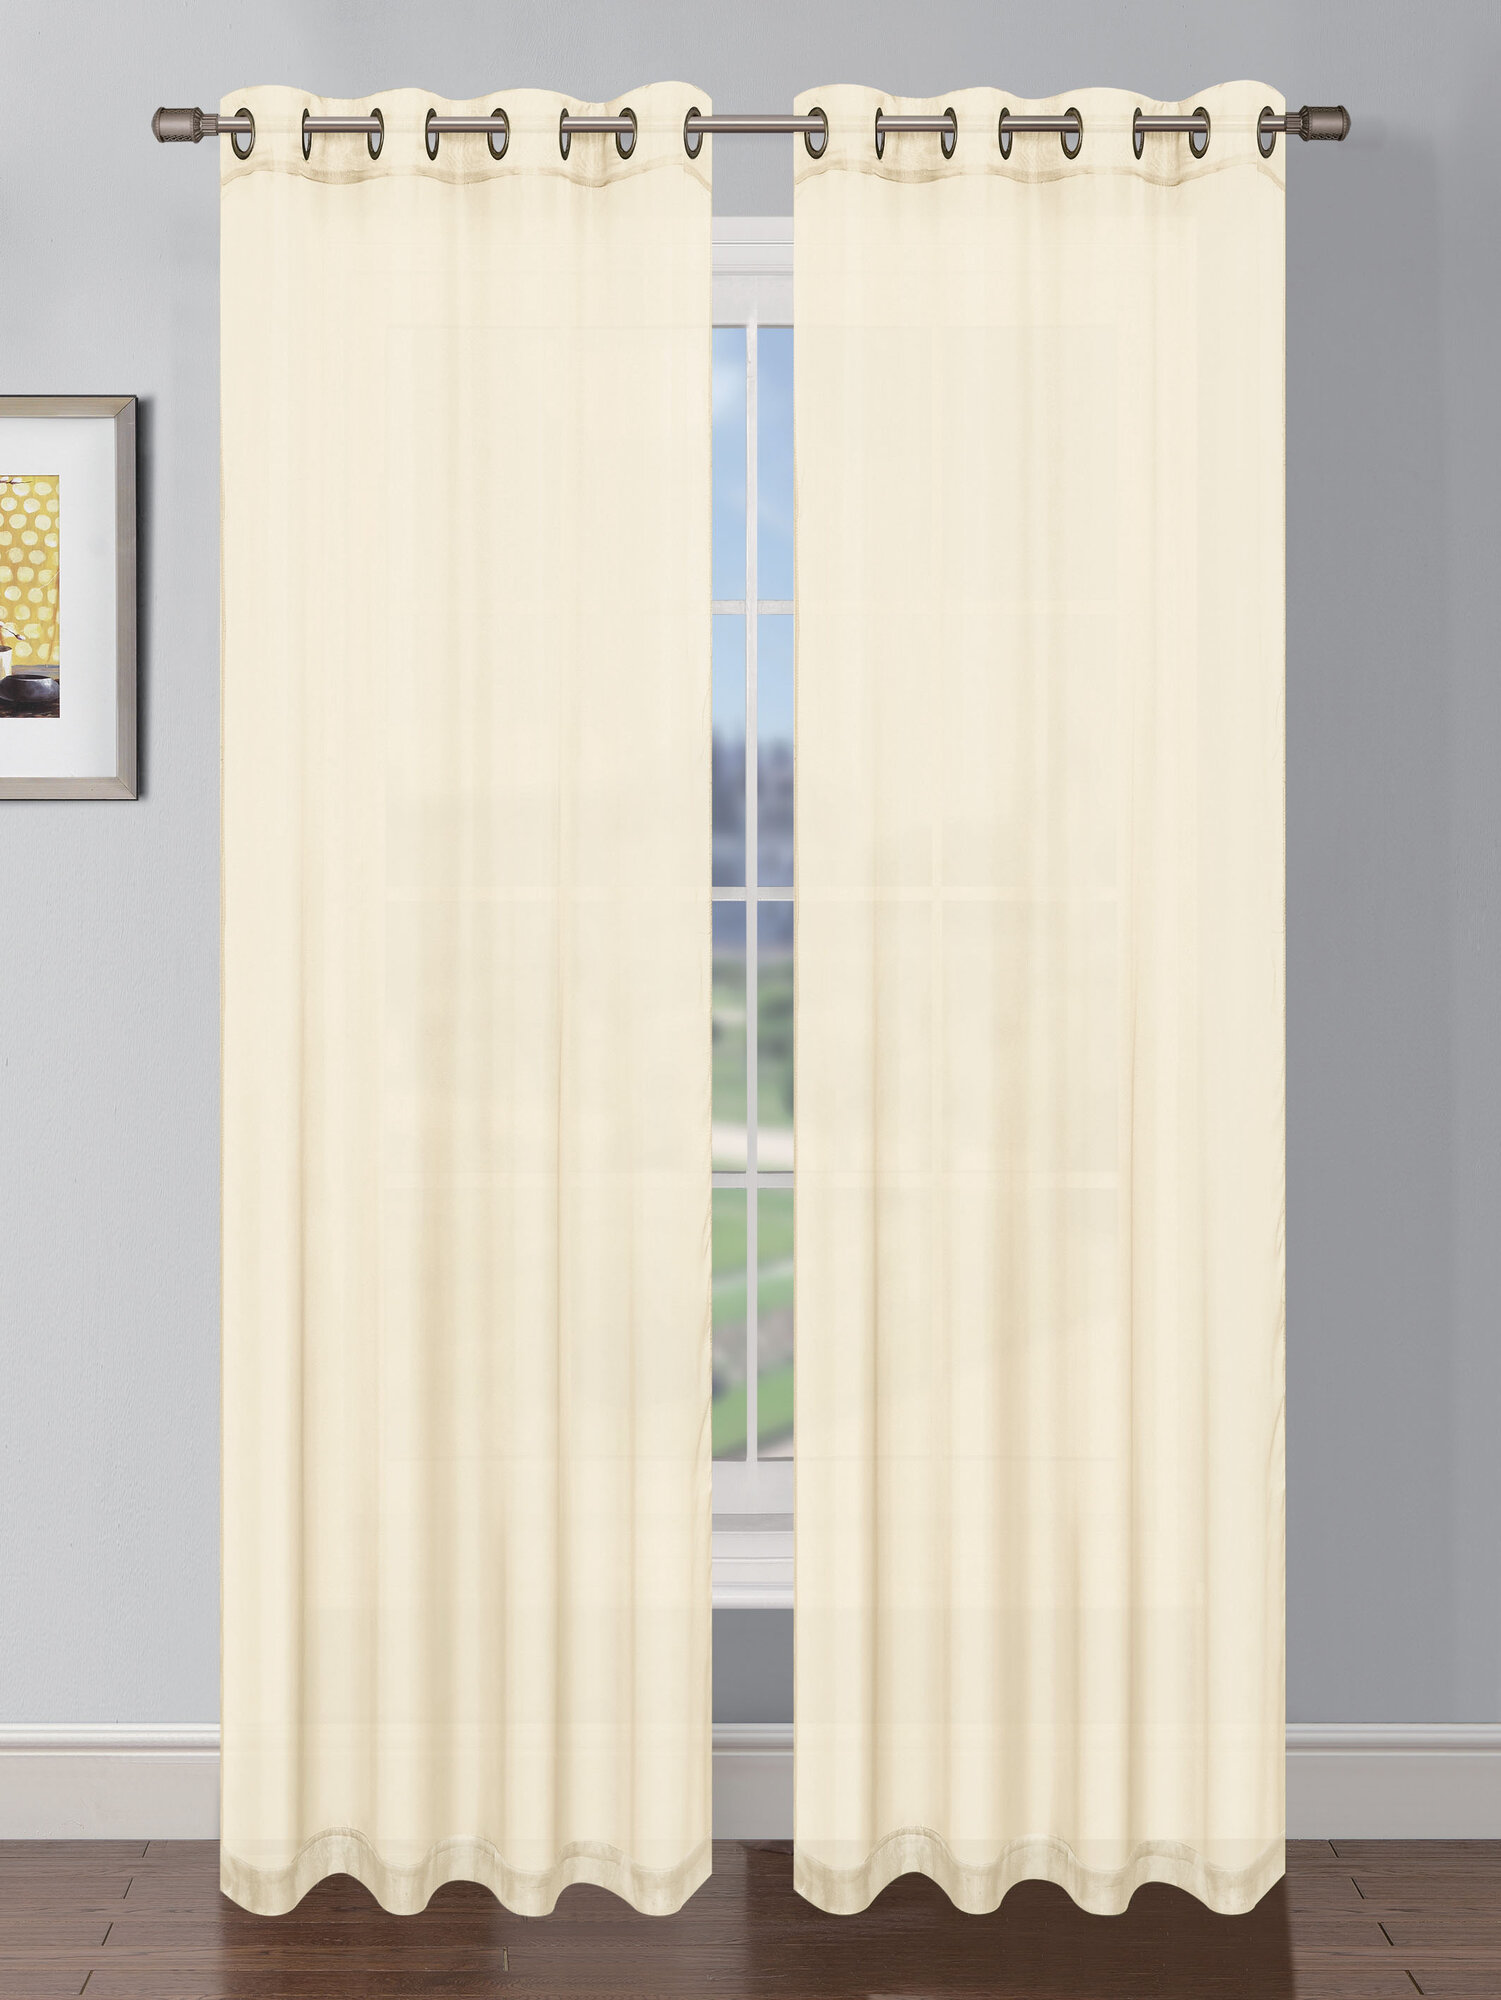 ... -Elements-Sheer-Elegance-Faux-Linen-Grommet-Extra-Wide-Curtain-Panels